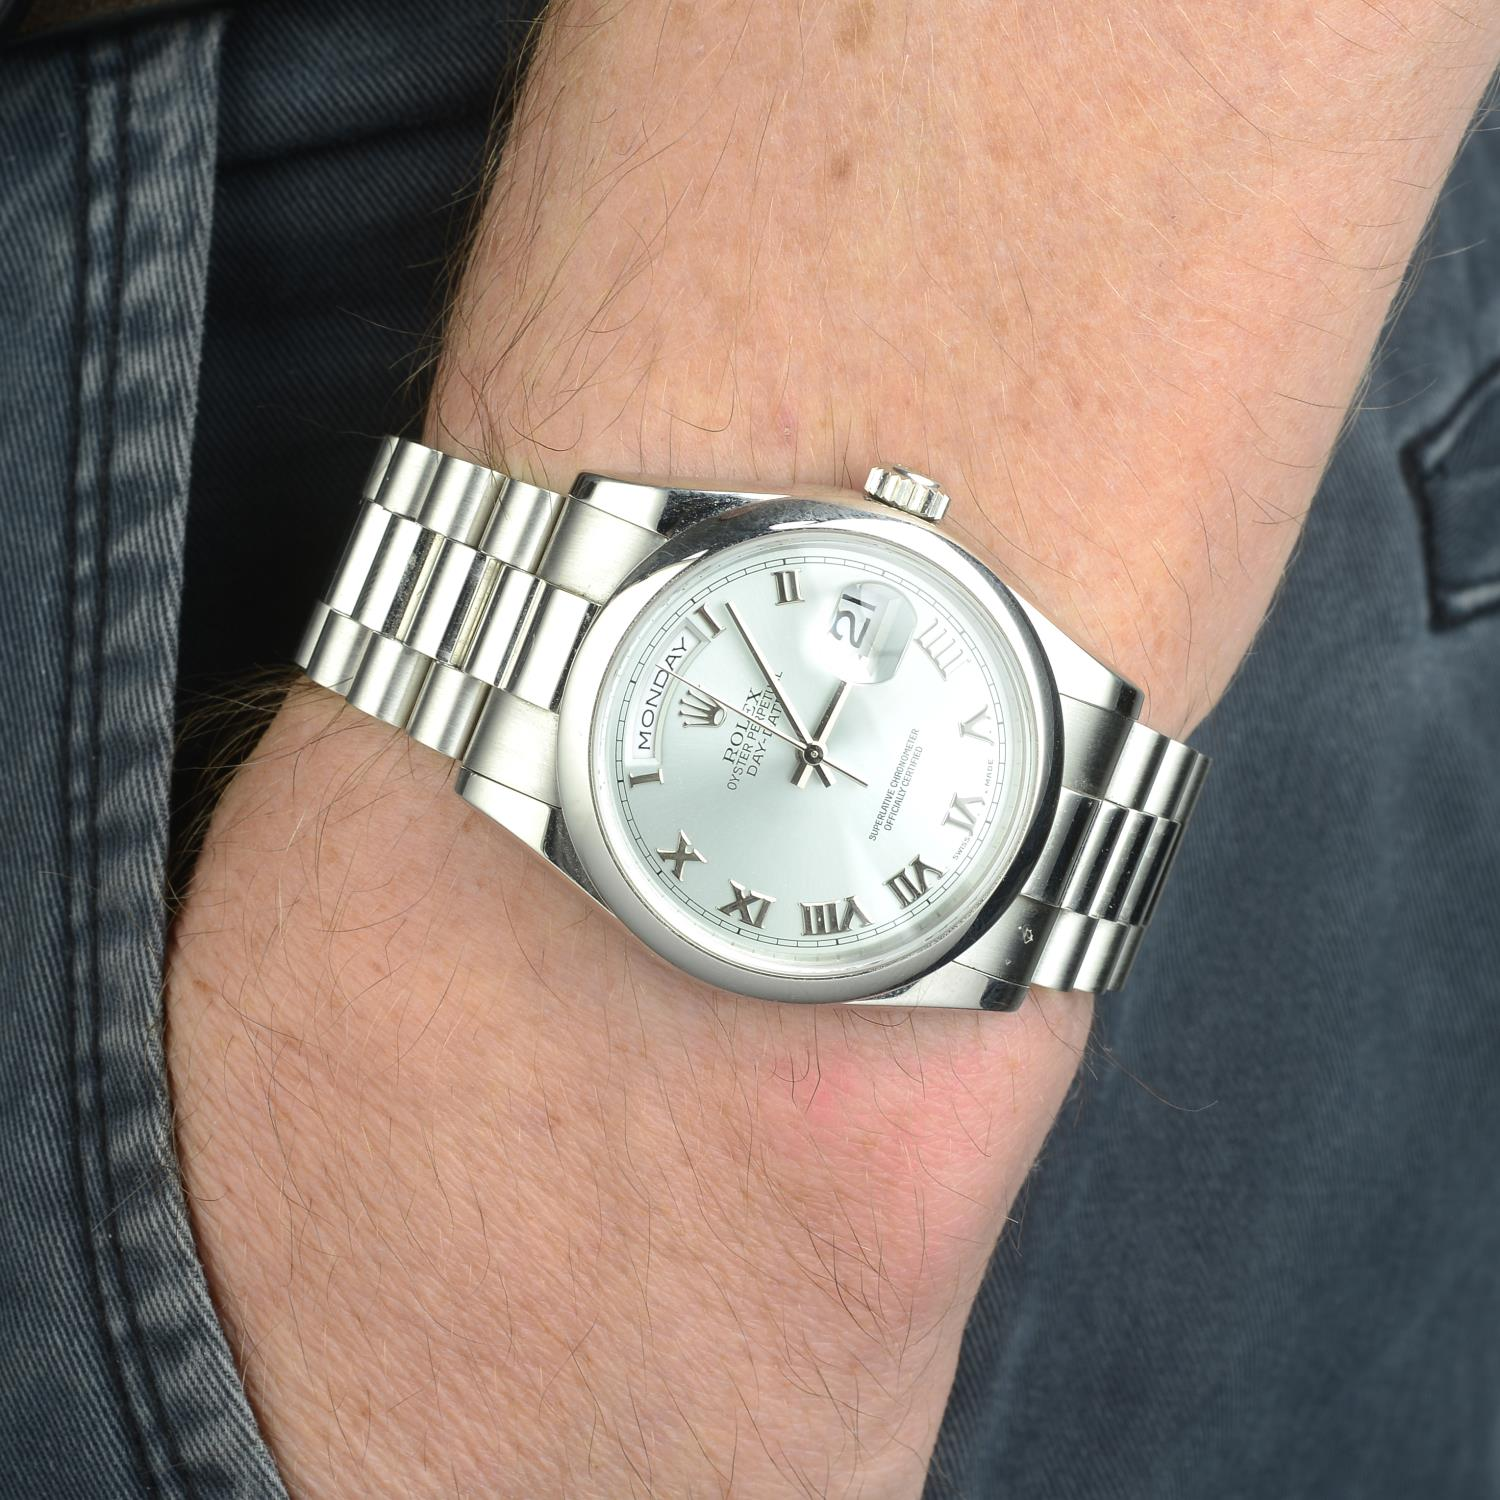 ROLEX - an Oyster Perpetual Day-Date bracelet watch. - Image 3 of 5